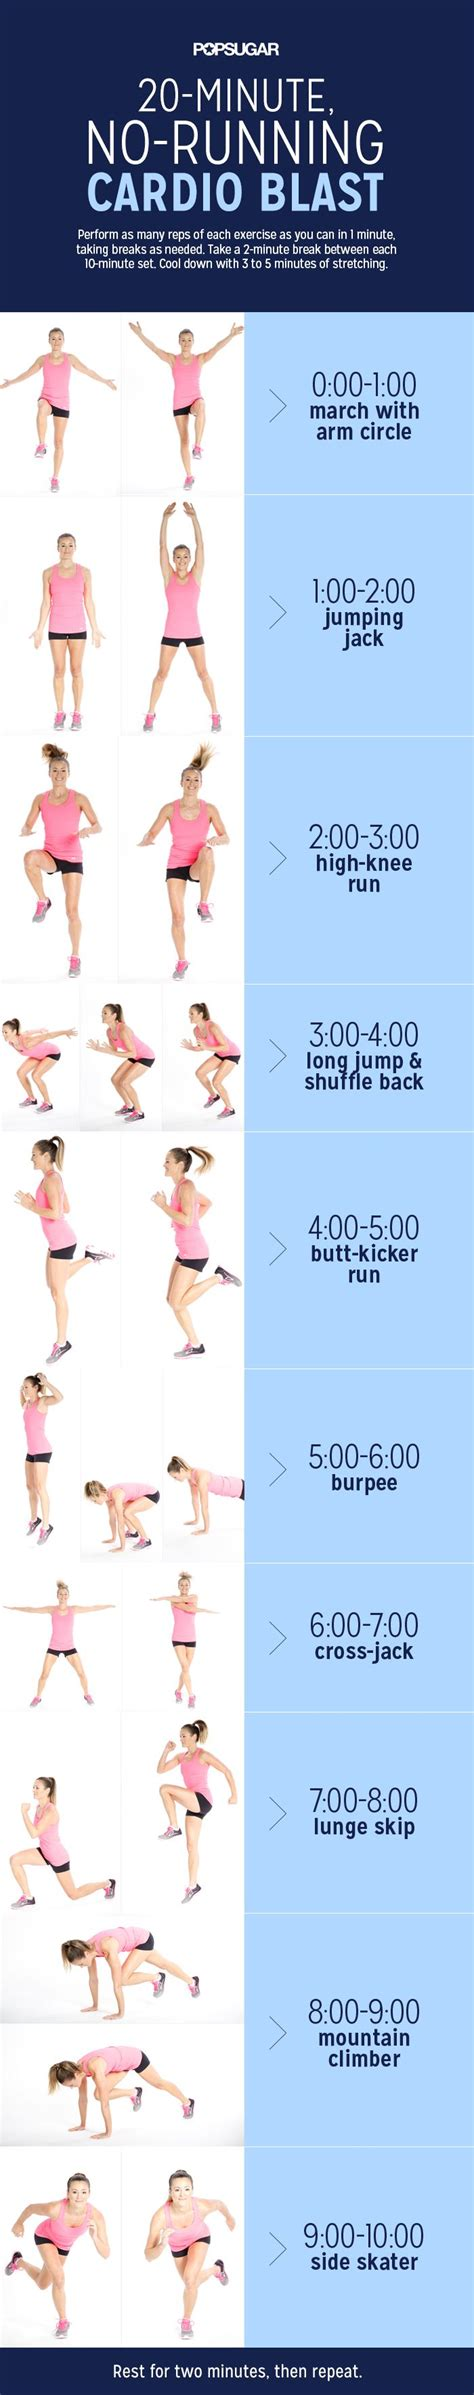 my favorite workout of the week 4 no equipment cardio